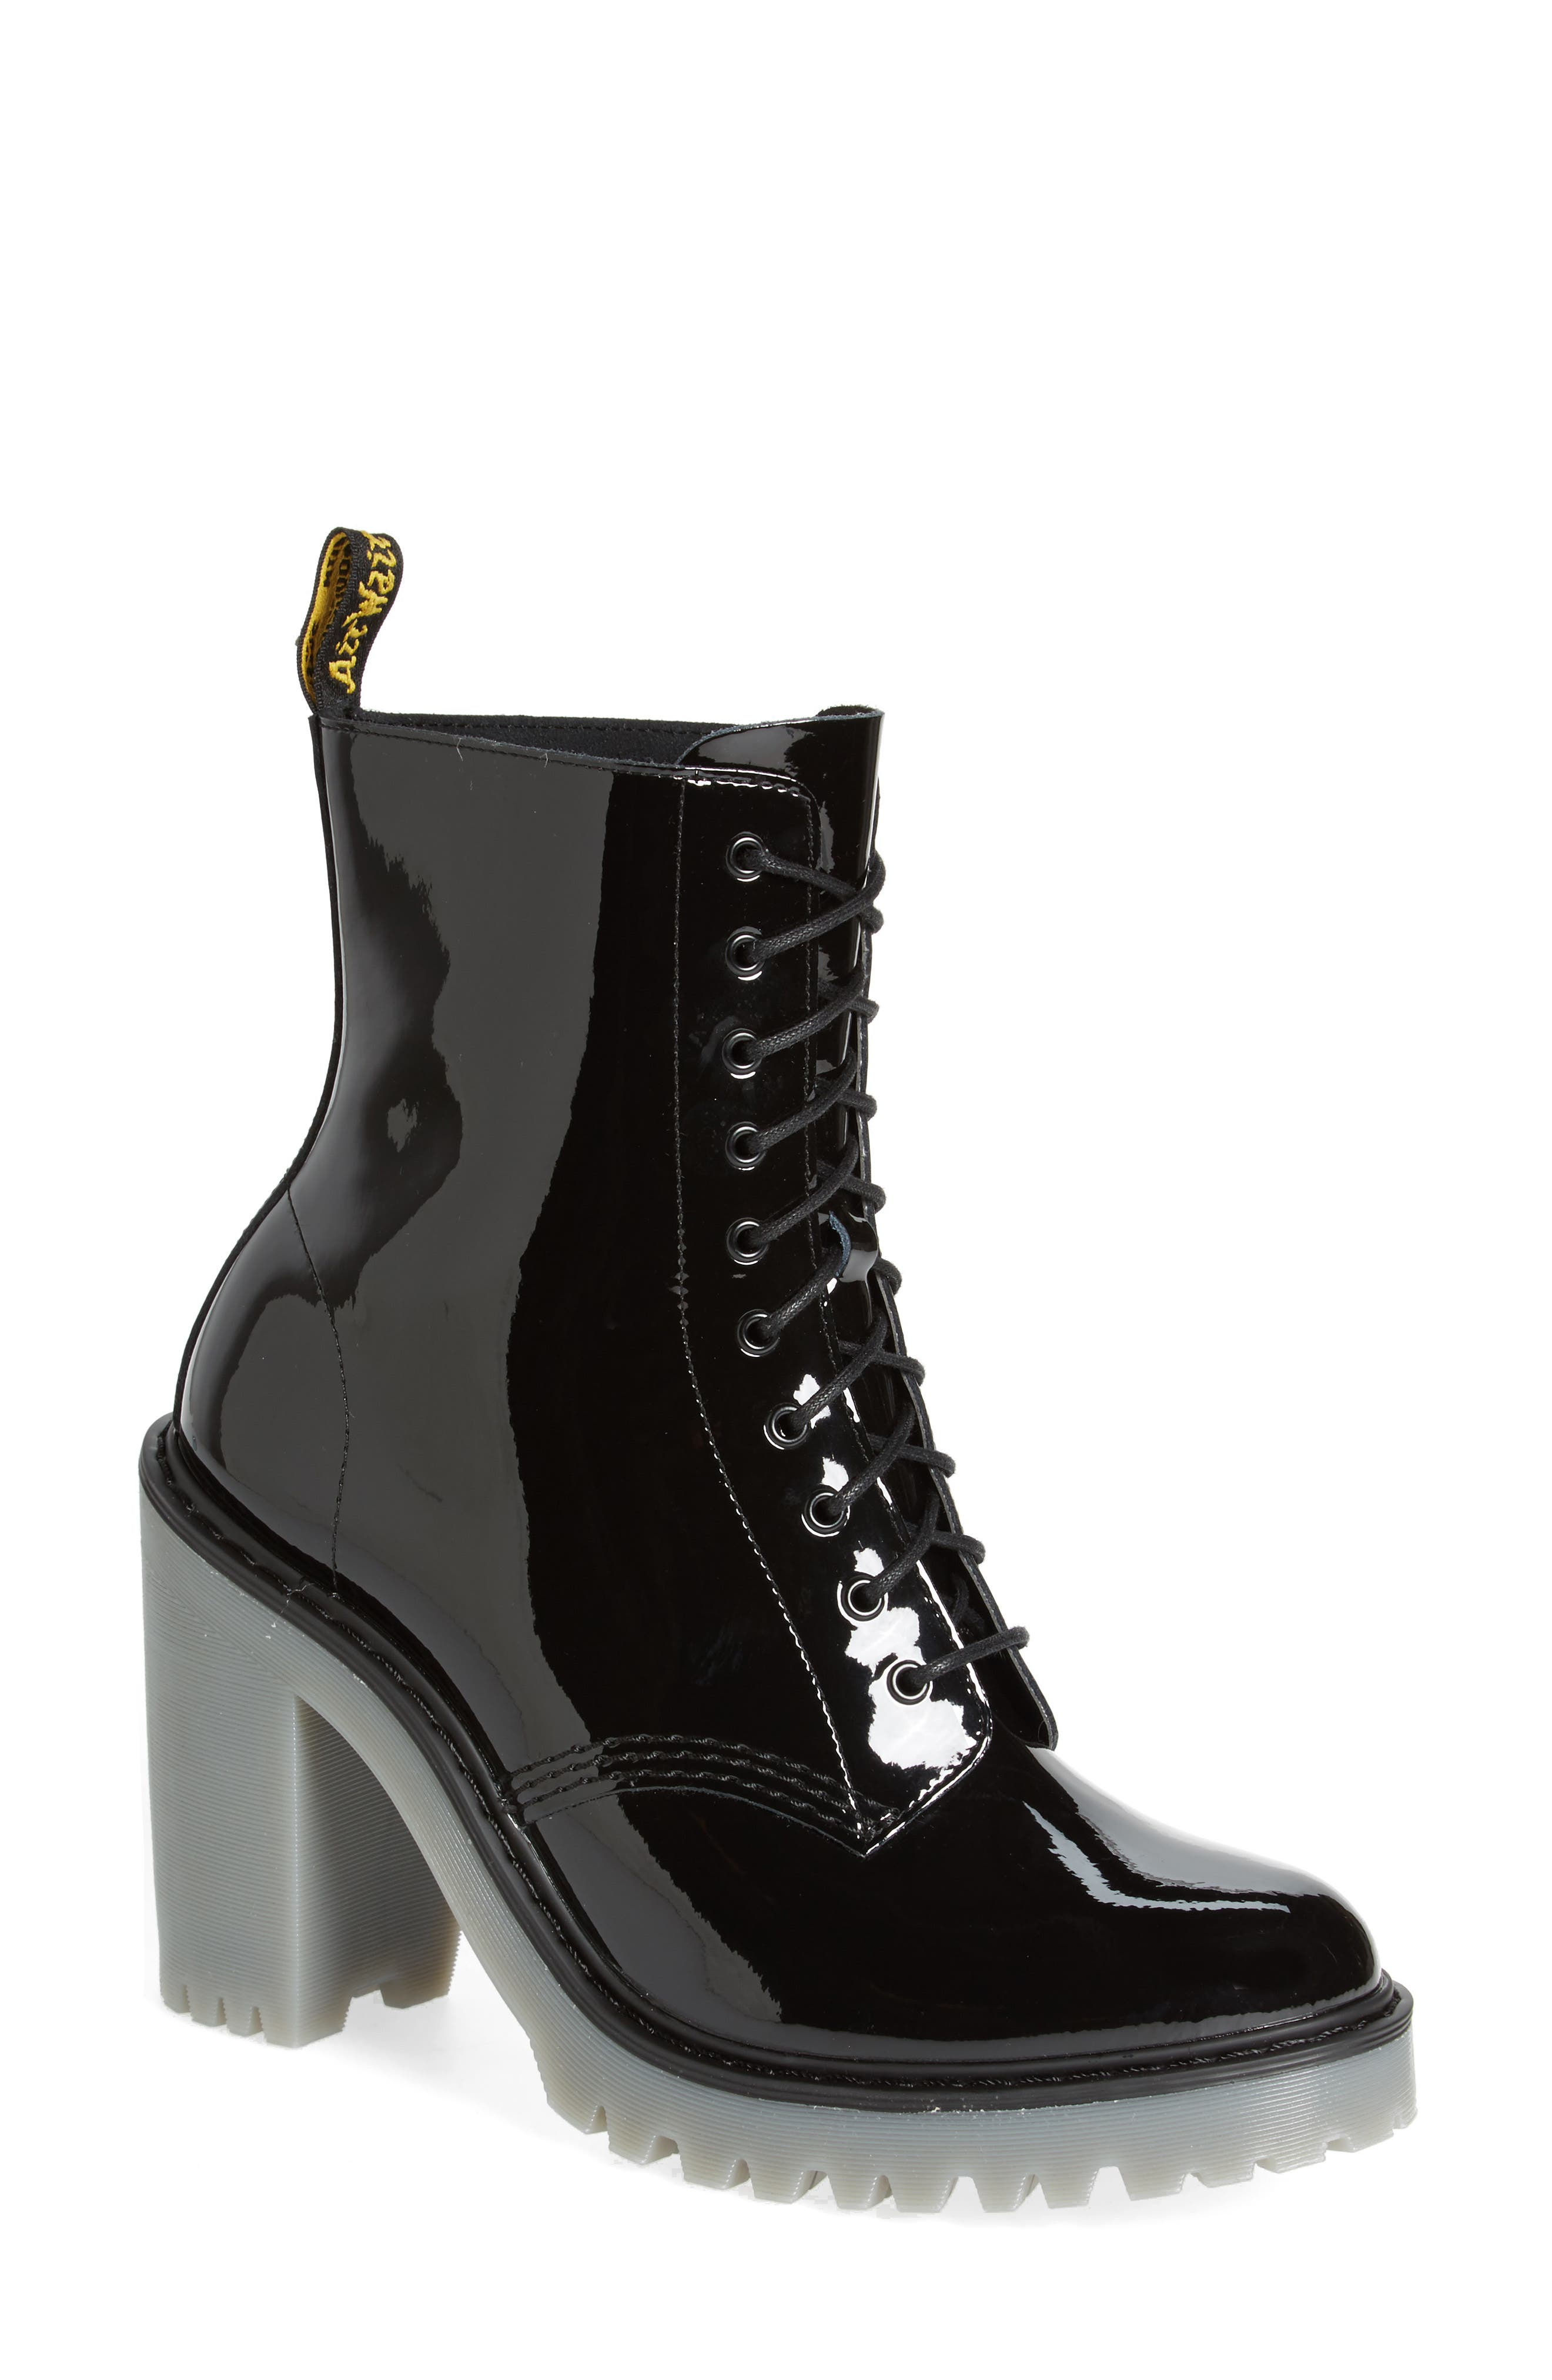 Kendra Heeled Bootie,                             Main thumbnail 1, color,                             Black Patent Leather